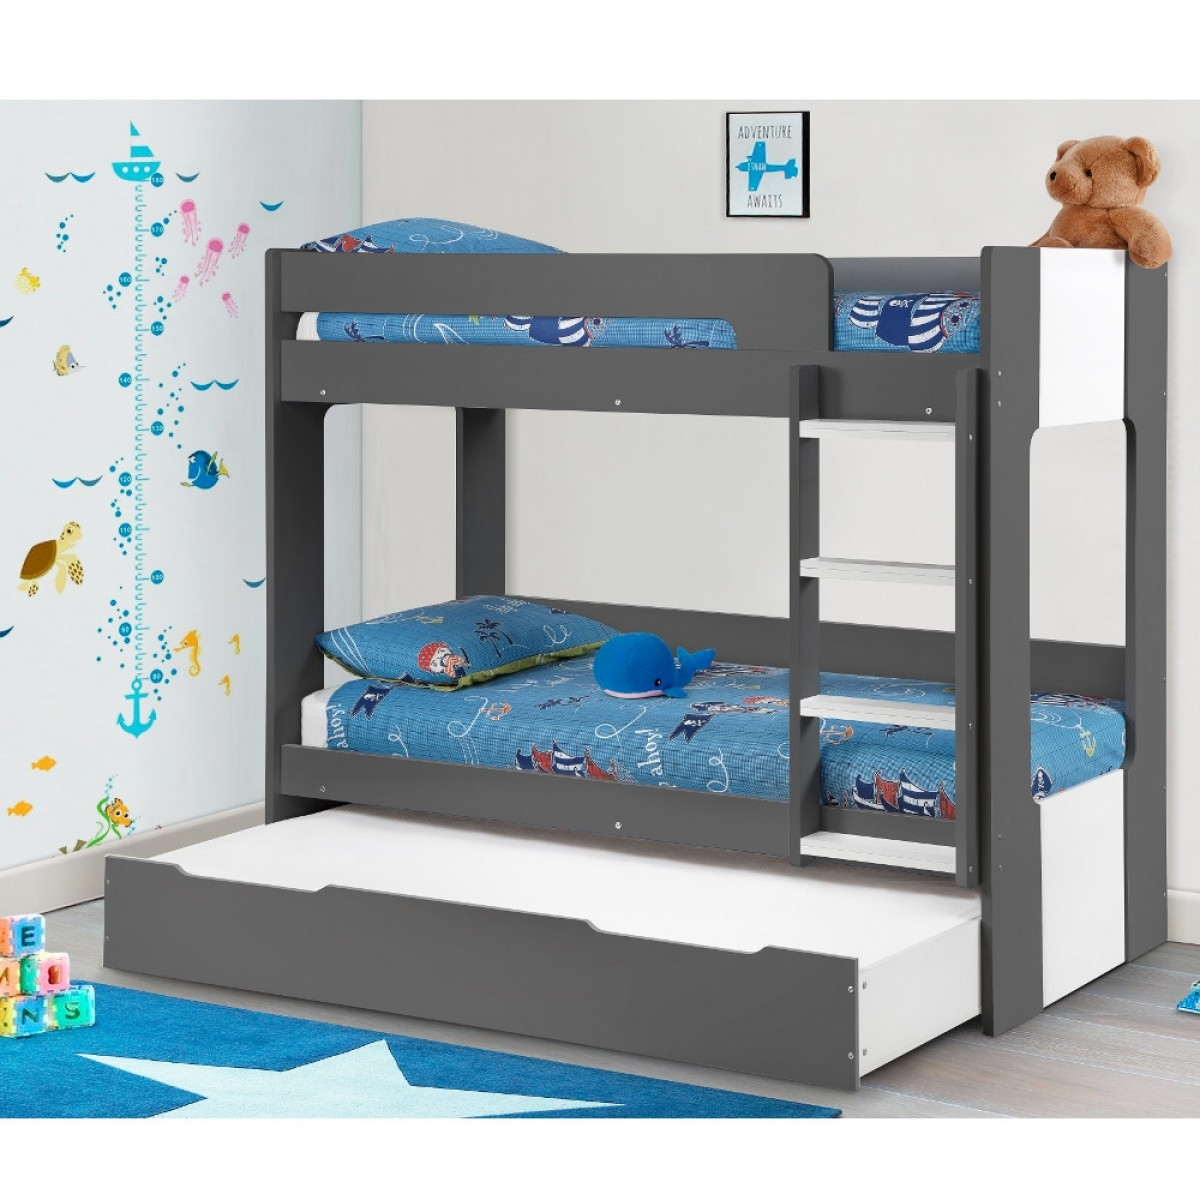 Ellie Grey Wooden Bunk Bed And Trundle Guest Bed Underbed Storage Drawer